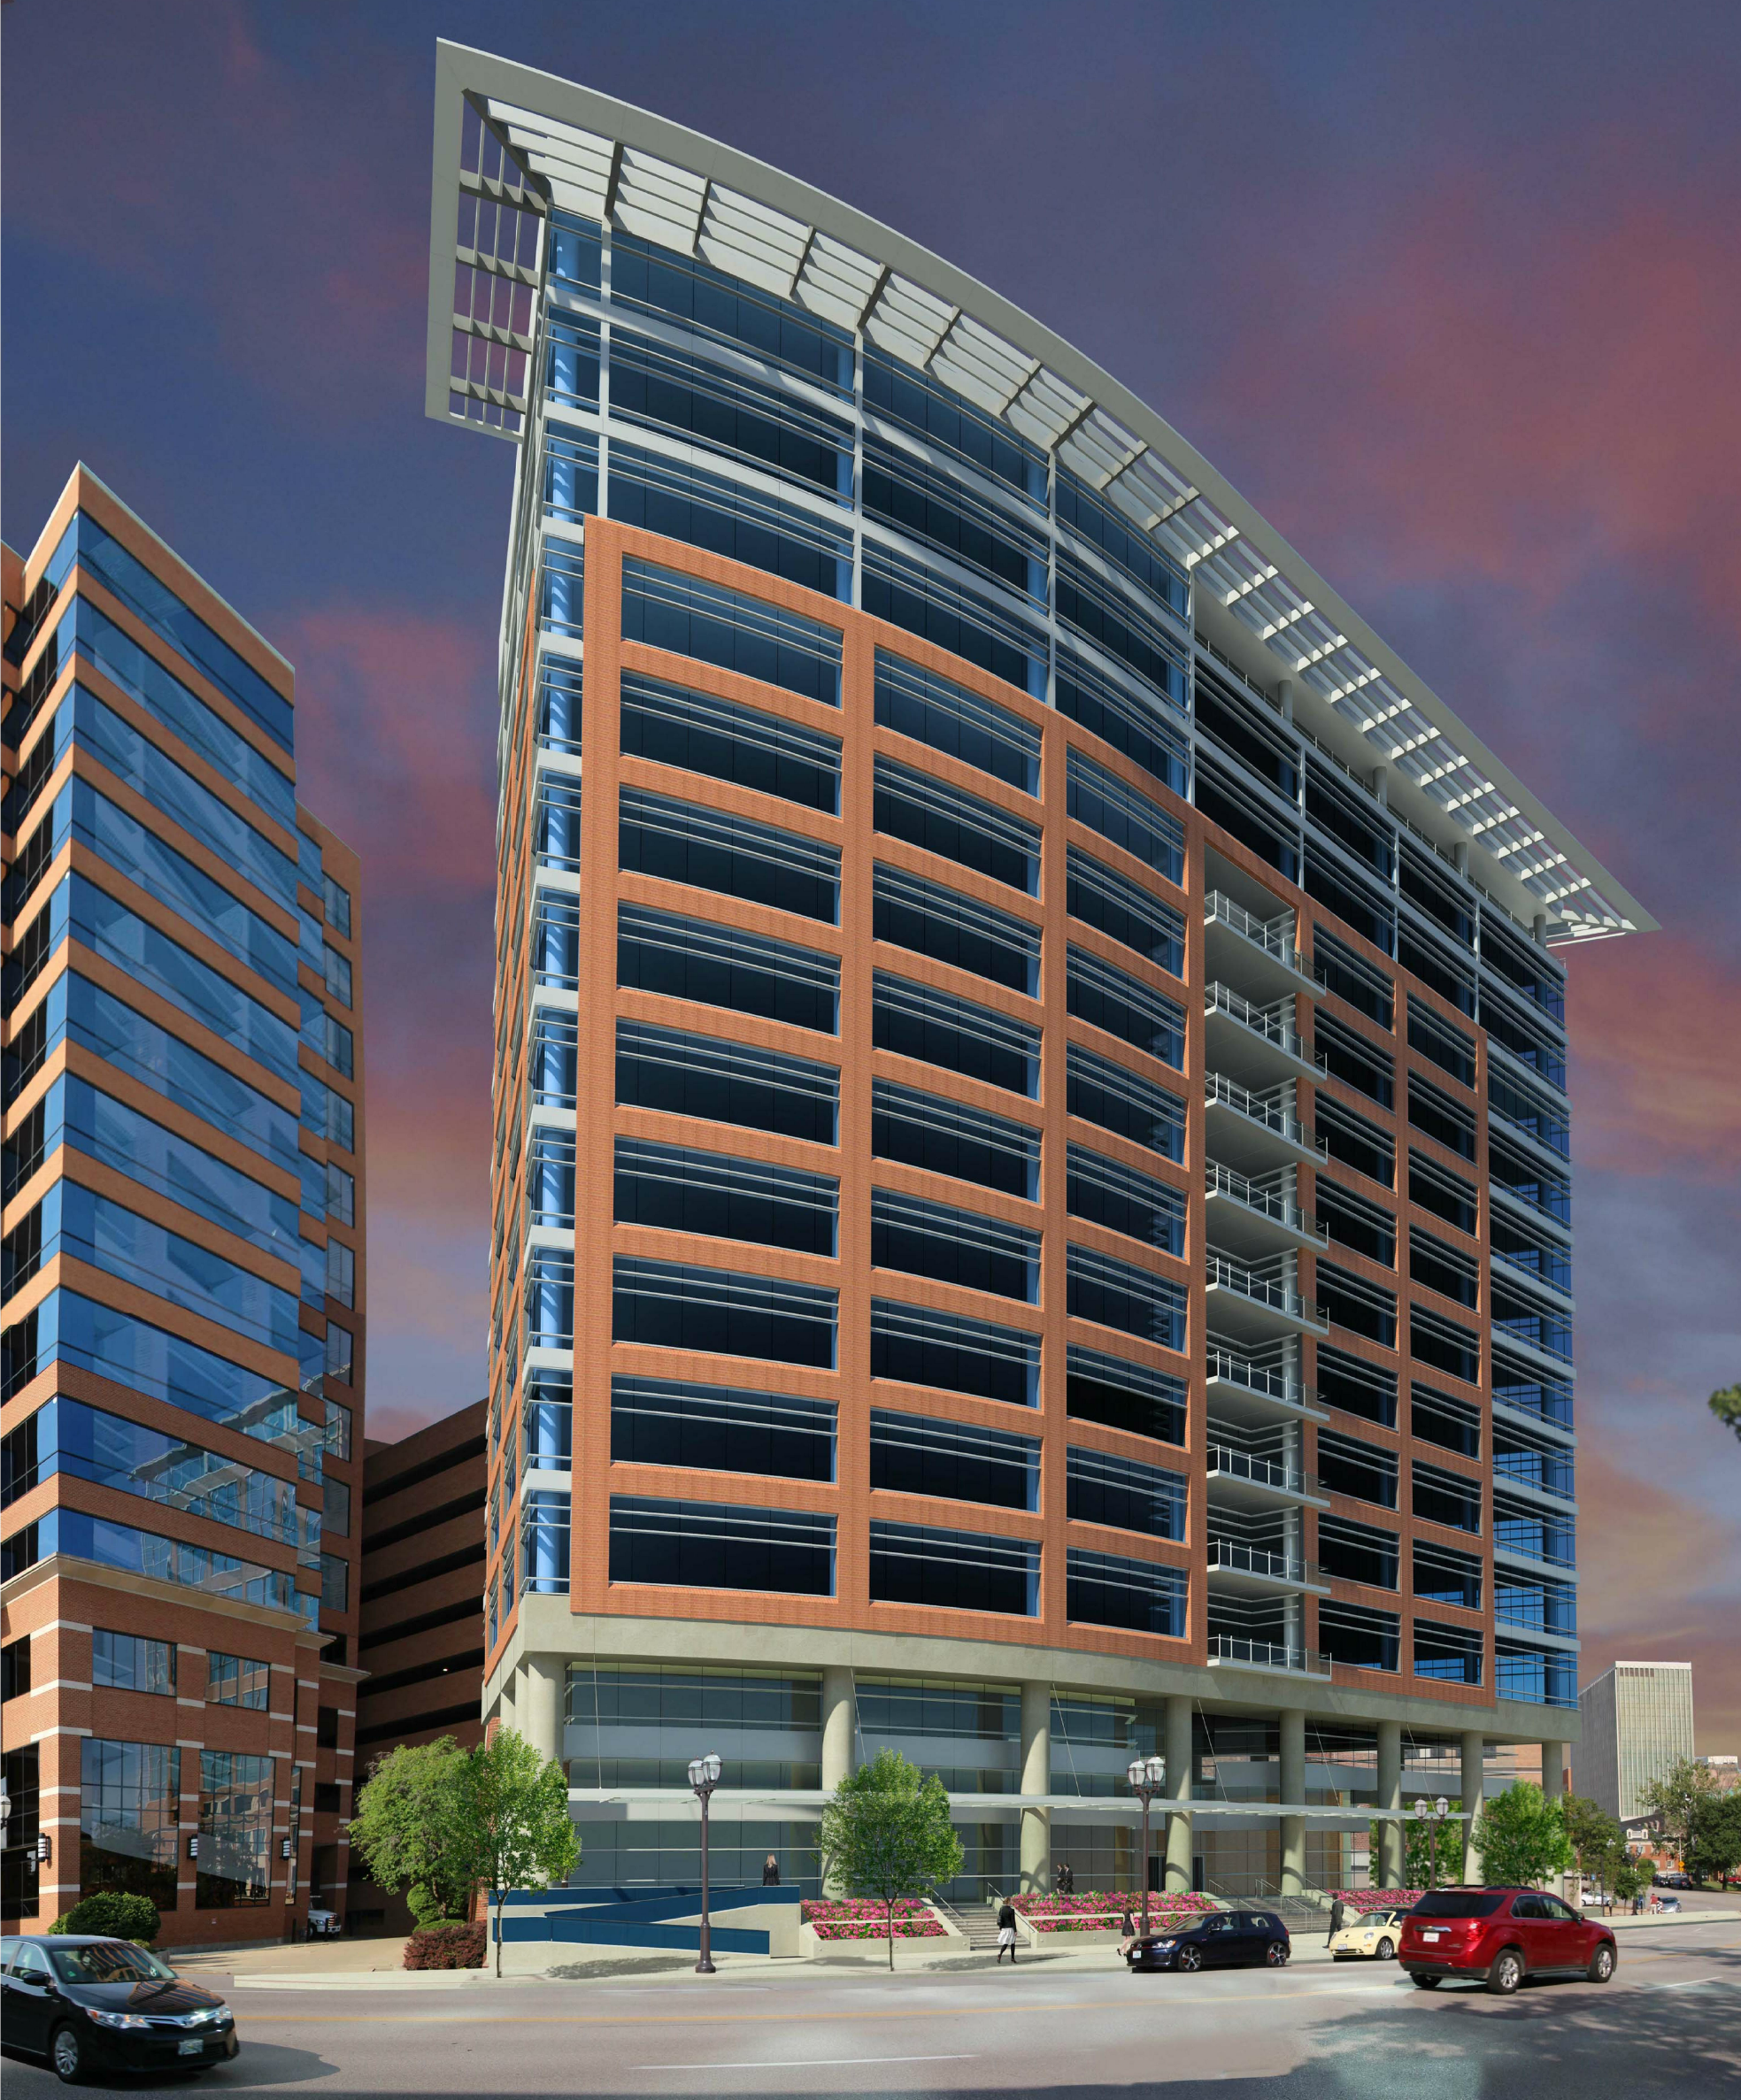 $68M, 14-Story, 233K SF Office Building Proposed for Clayton